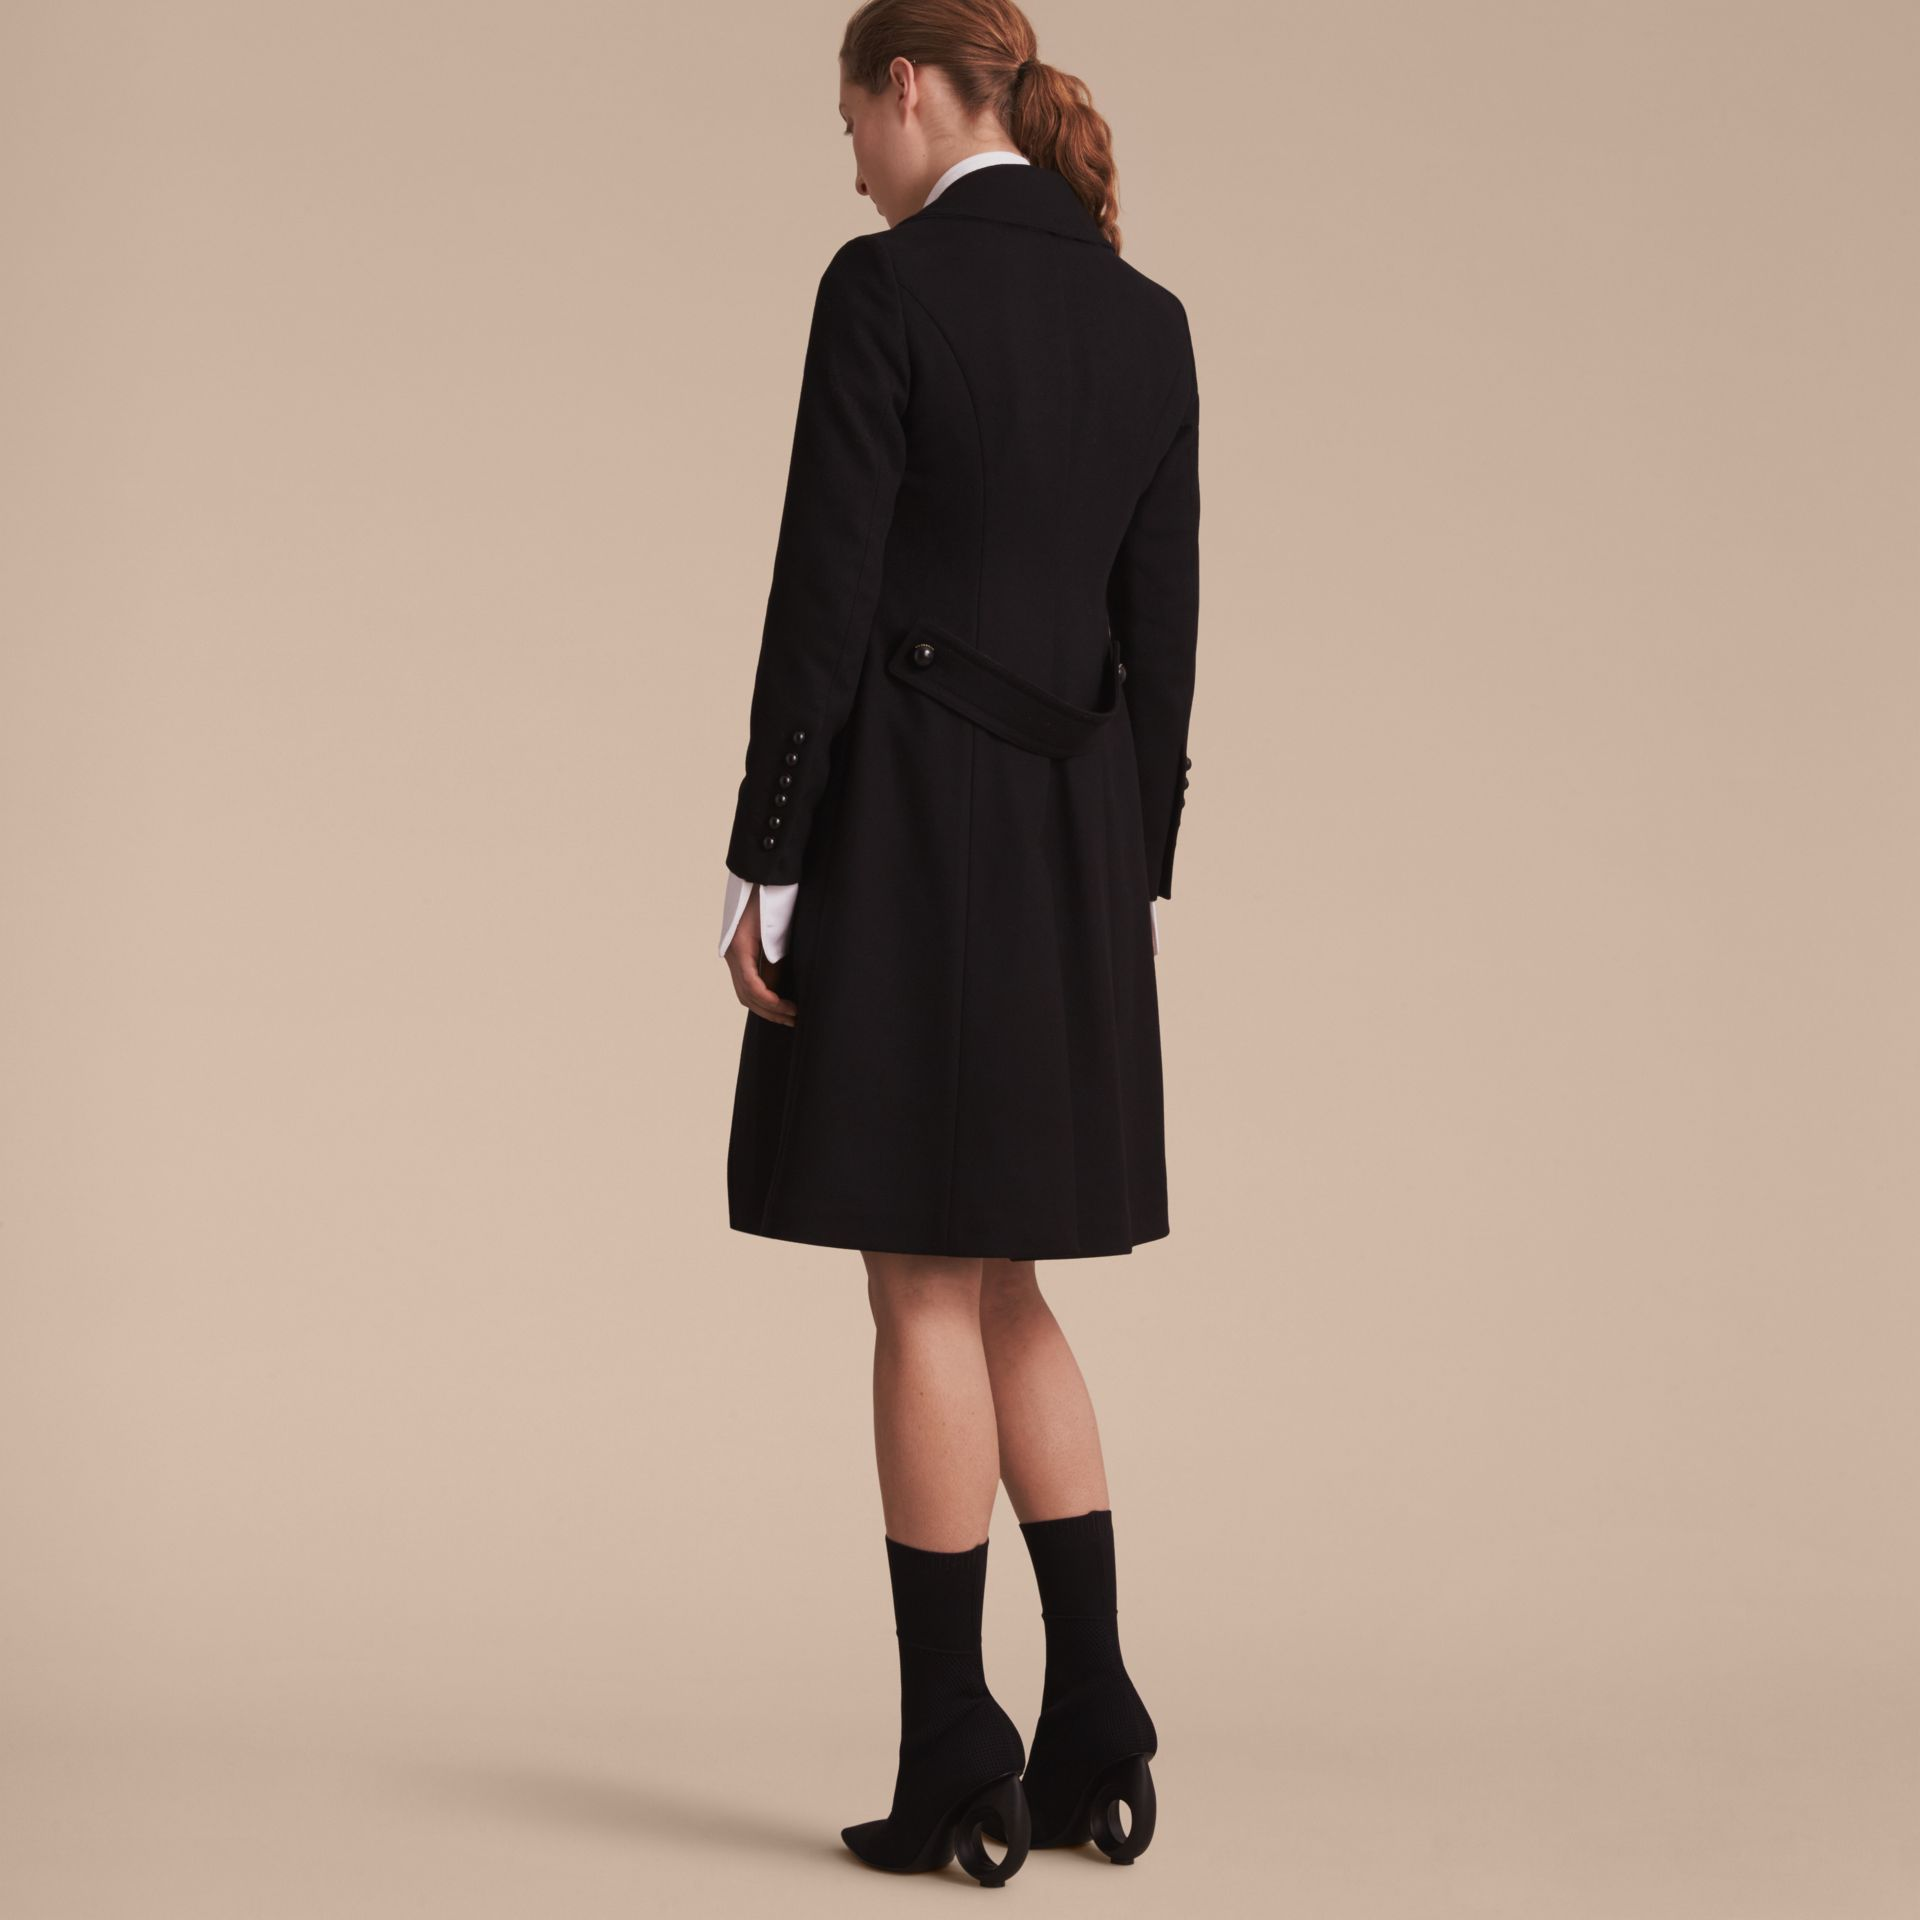 Wool Blend Double-breasted Coat in Black - Women | Burberry Singapore - gallery image 3